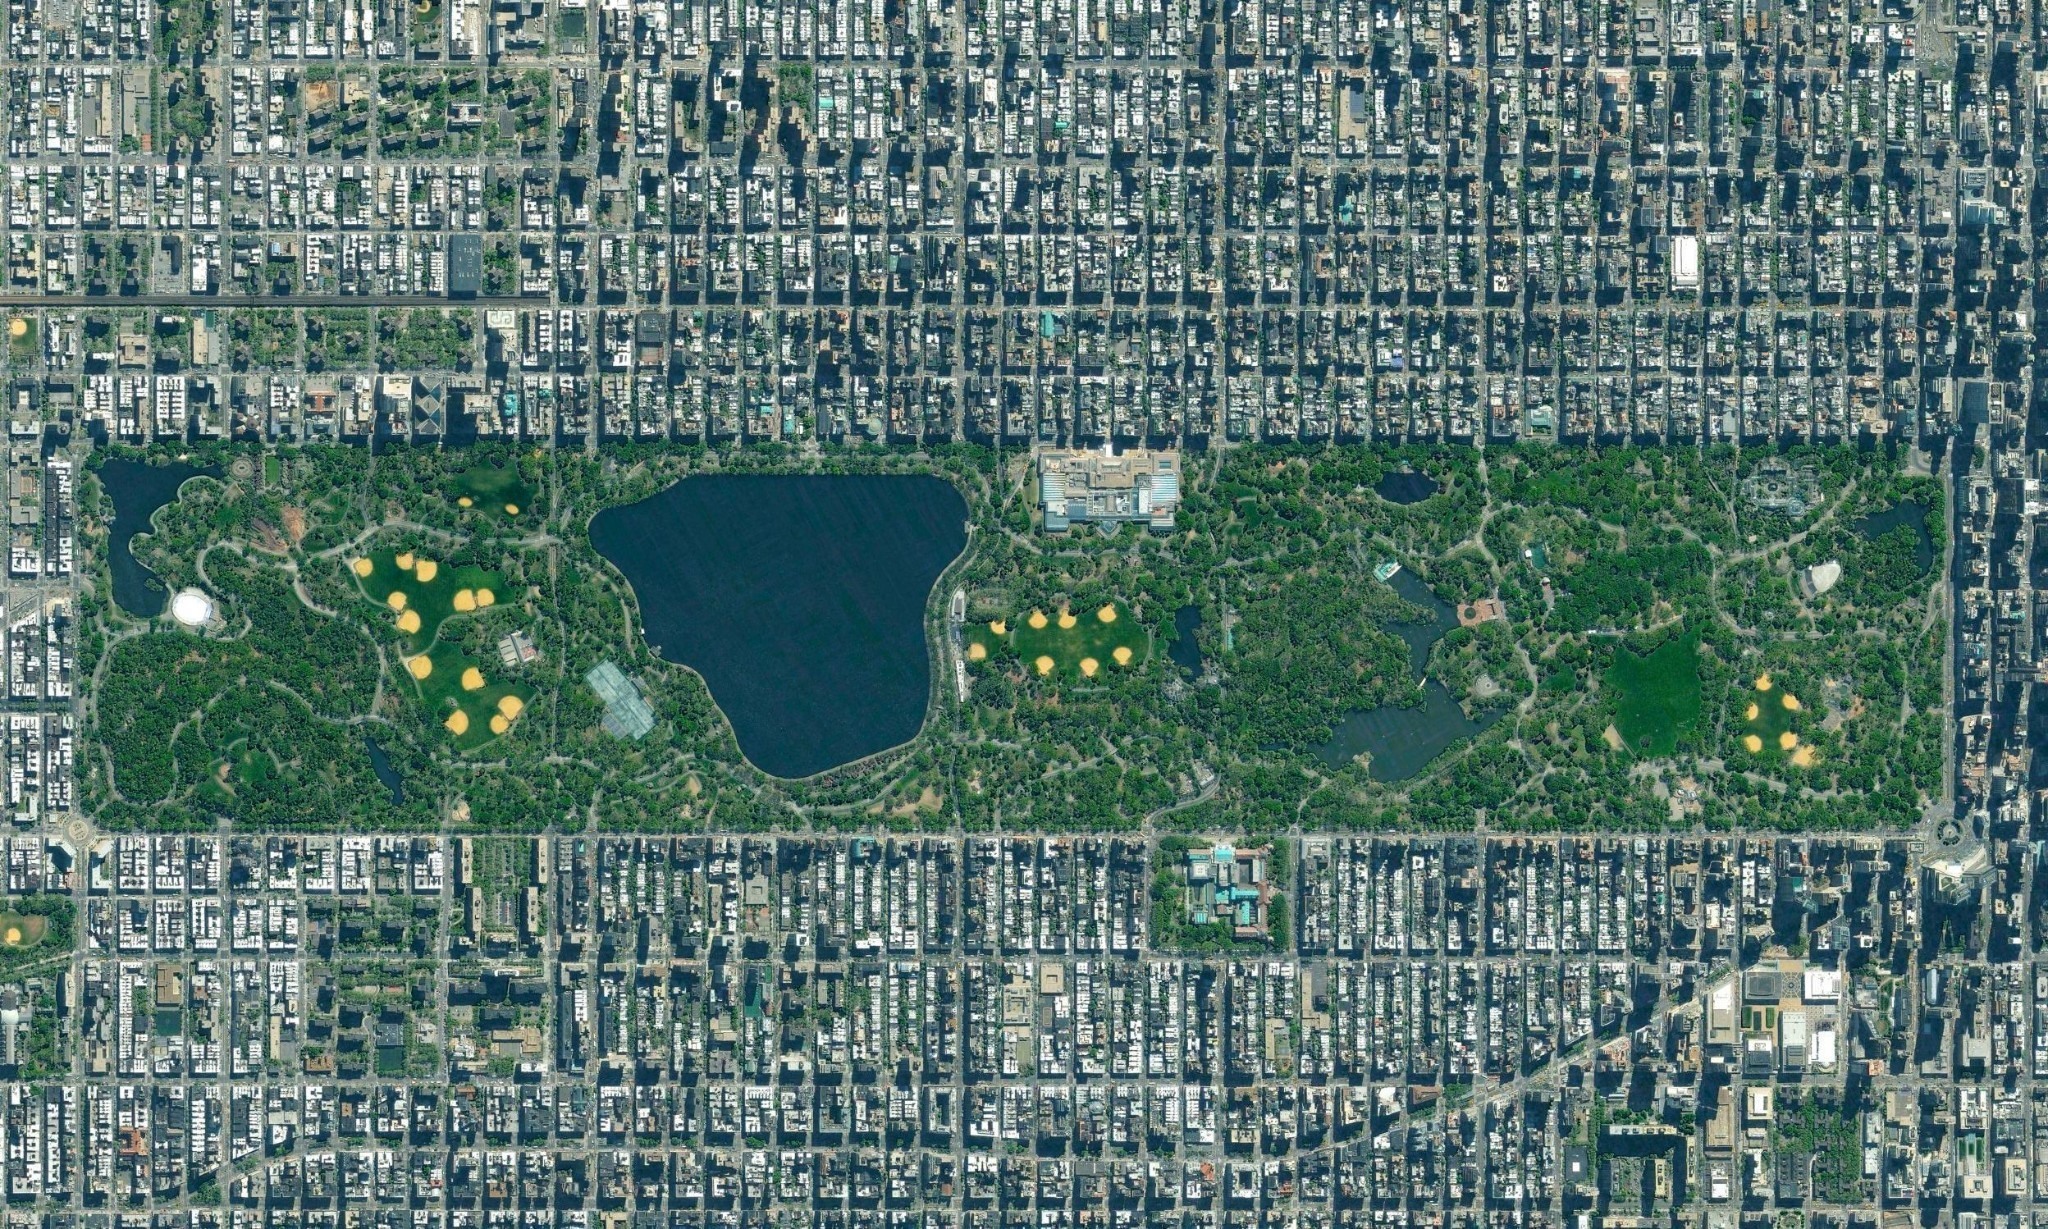 Interactive project maps all 600,000 trees in New York City's urban forest